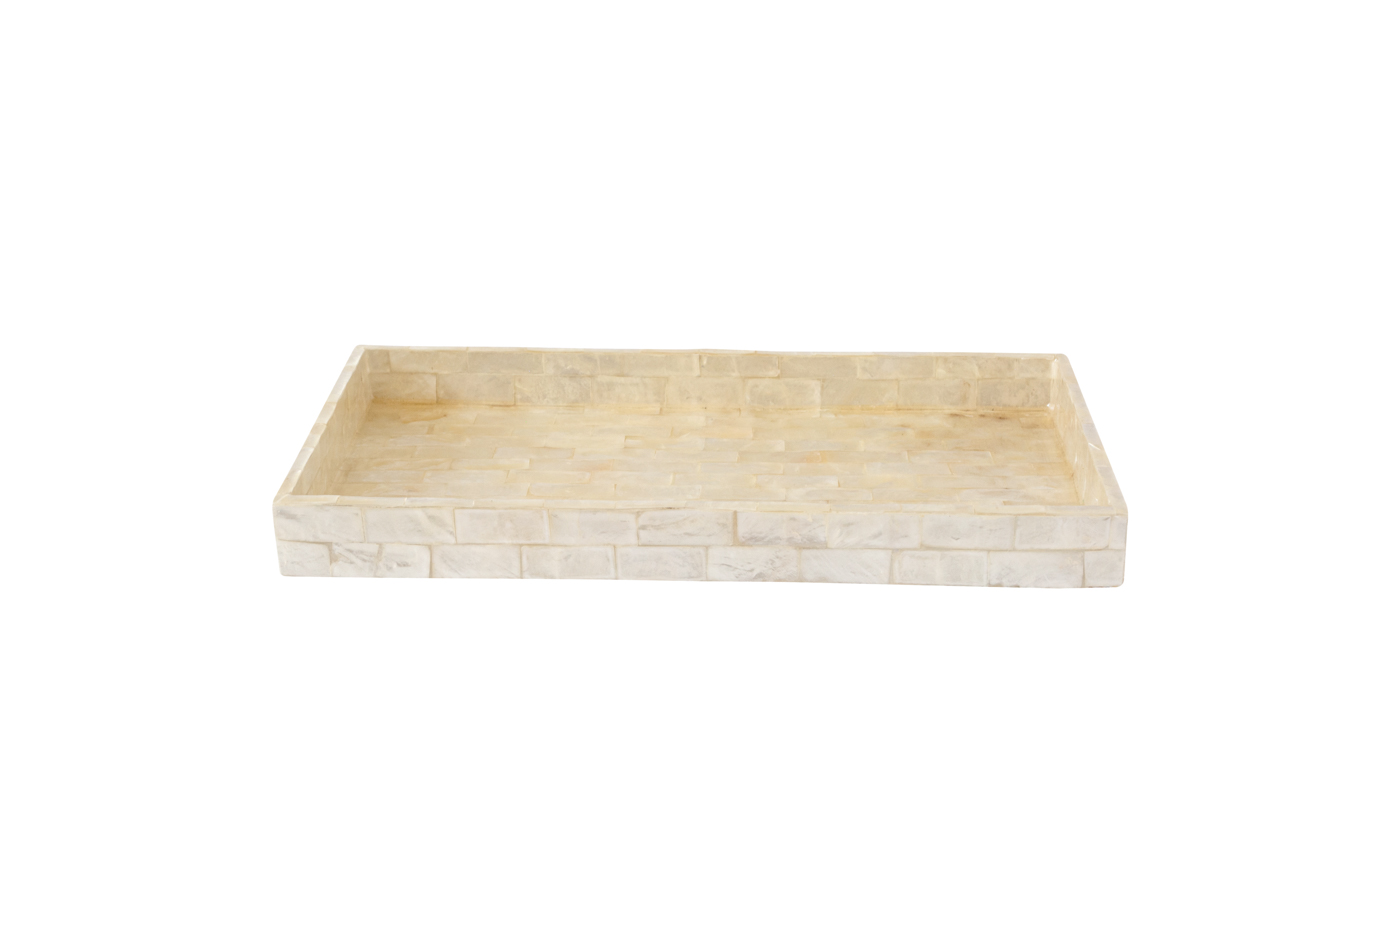 Rectangular wooden tray covered with mother-of-pearl - White